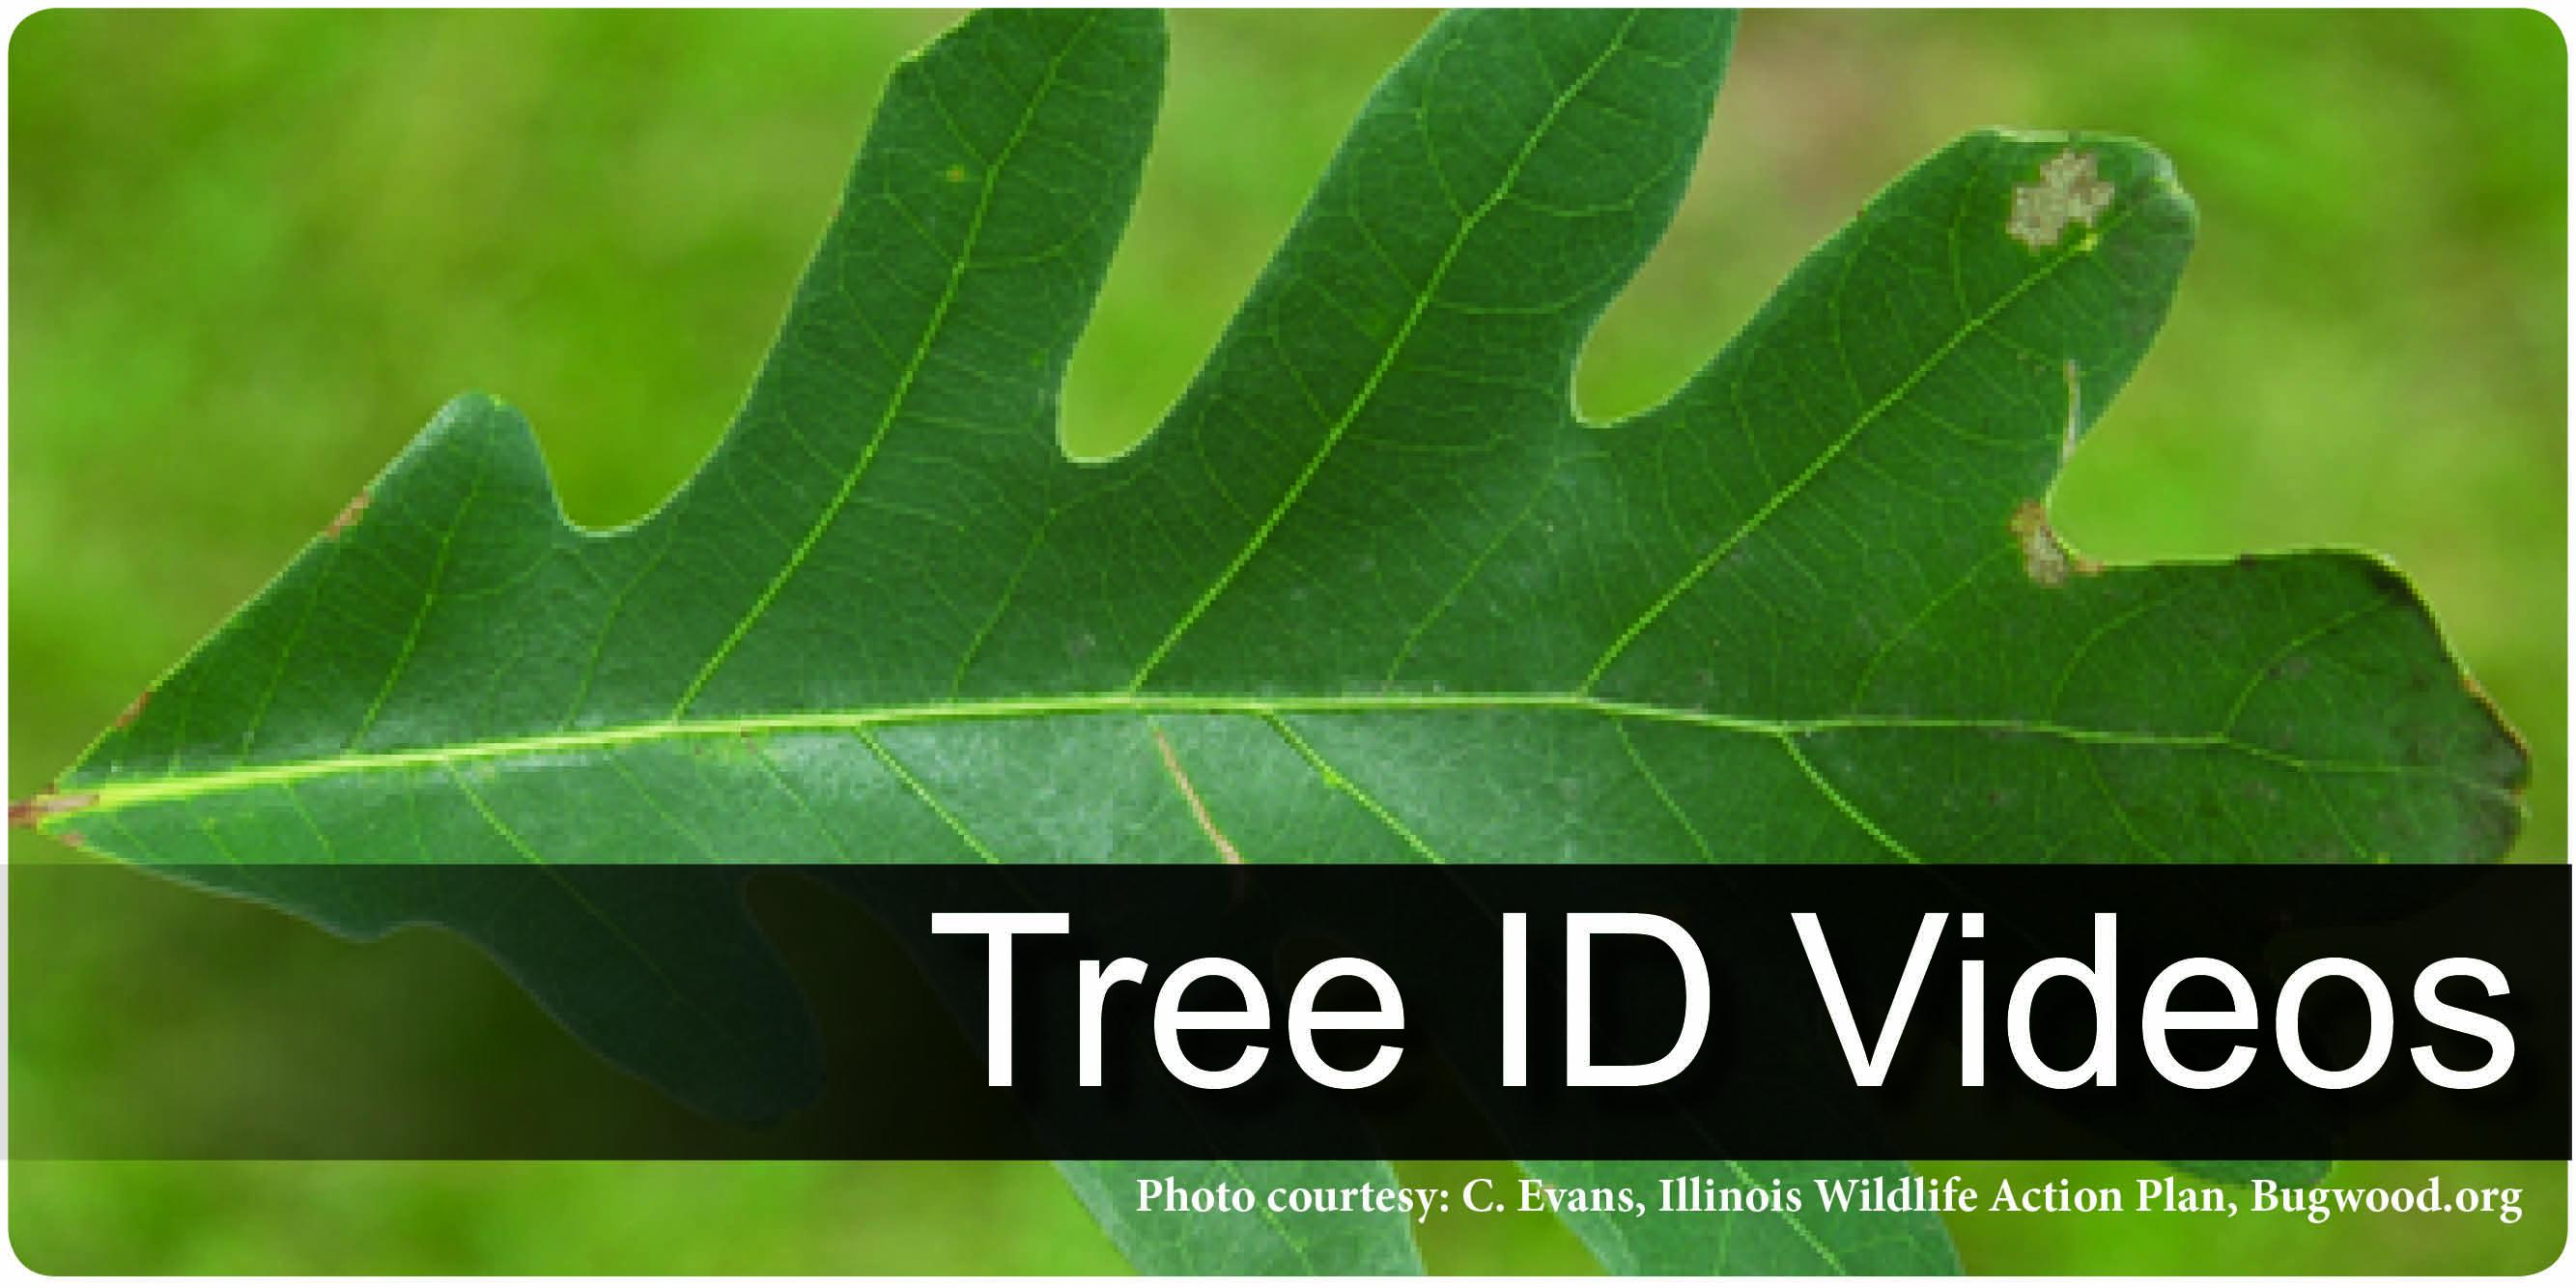 How to Identify Tree Videos